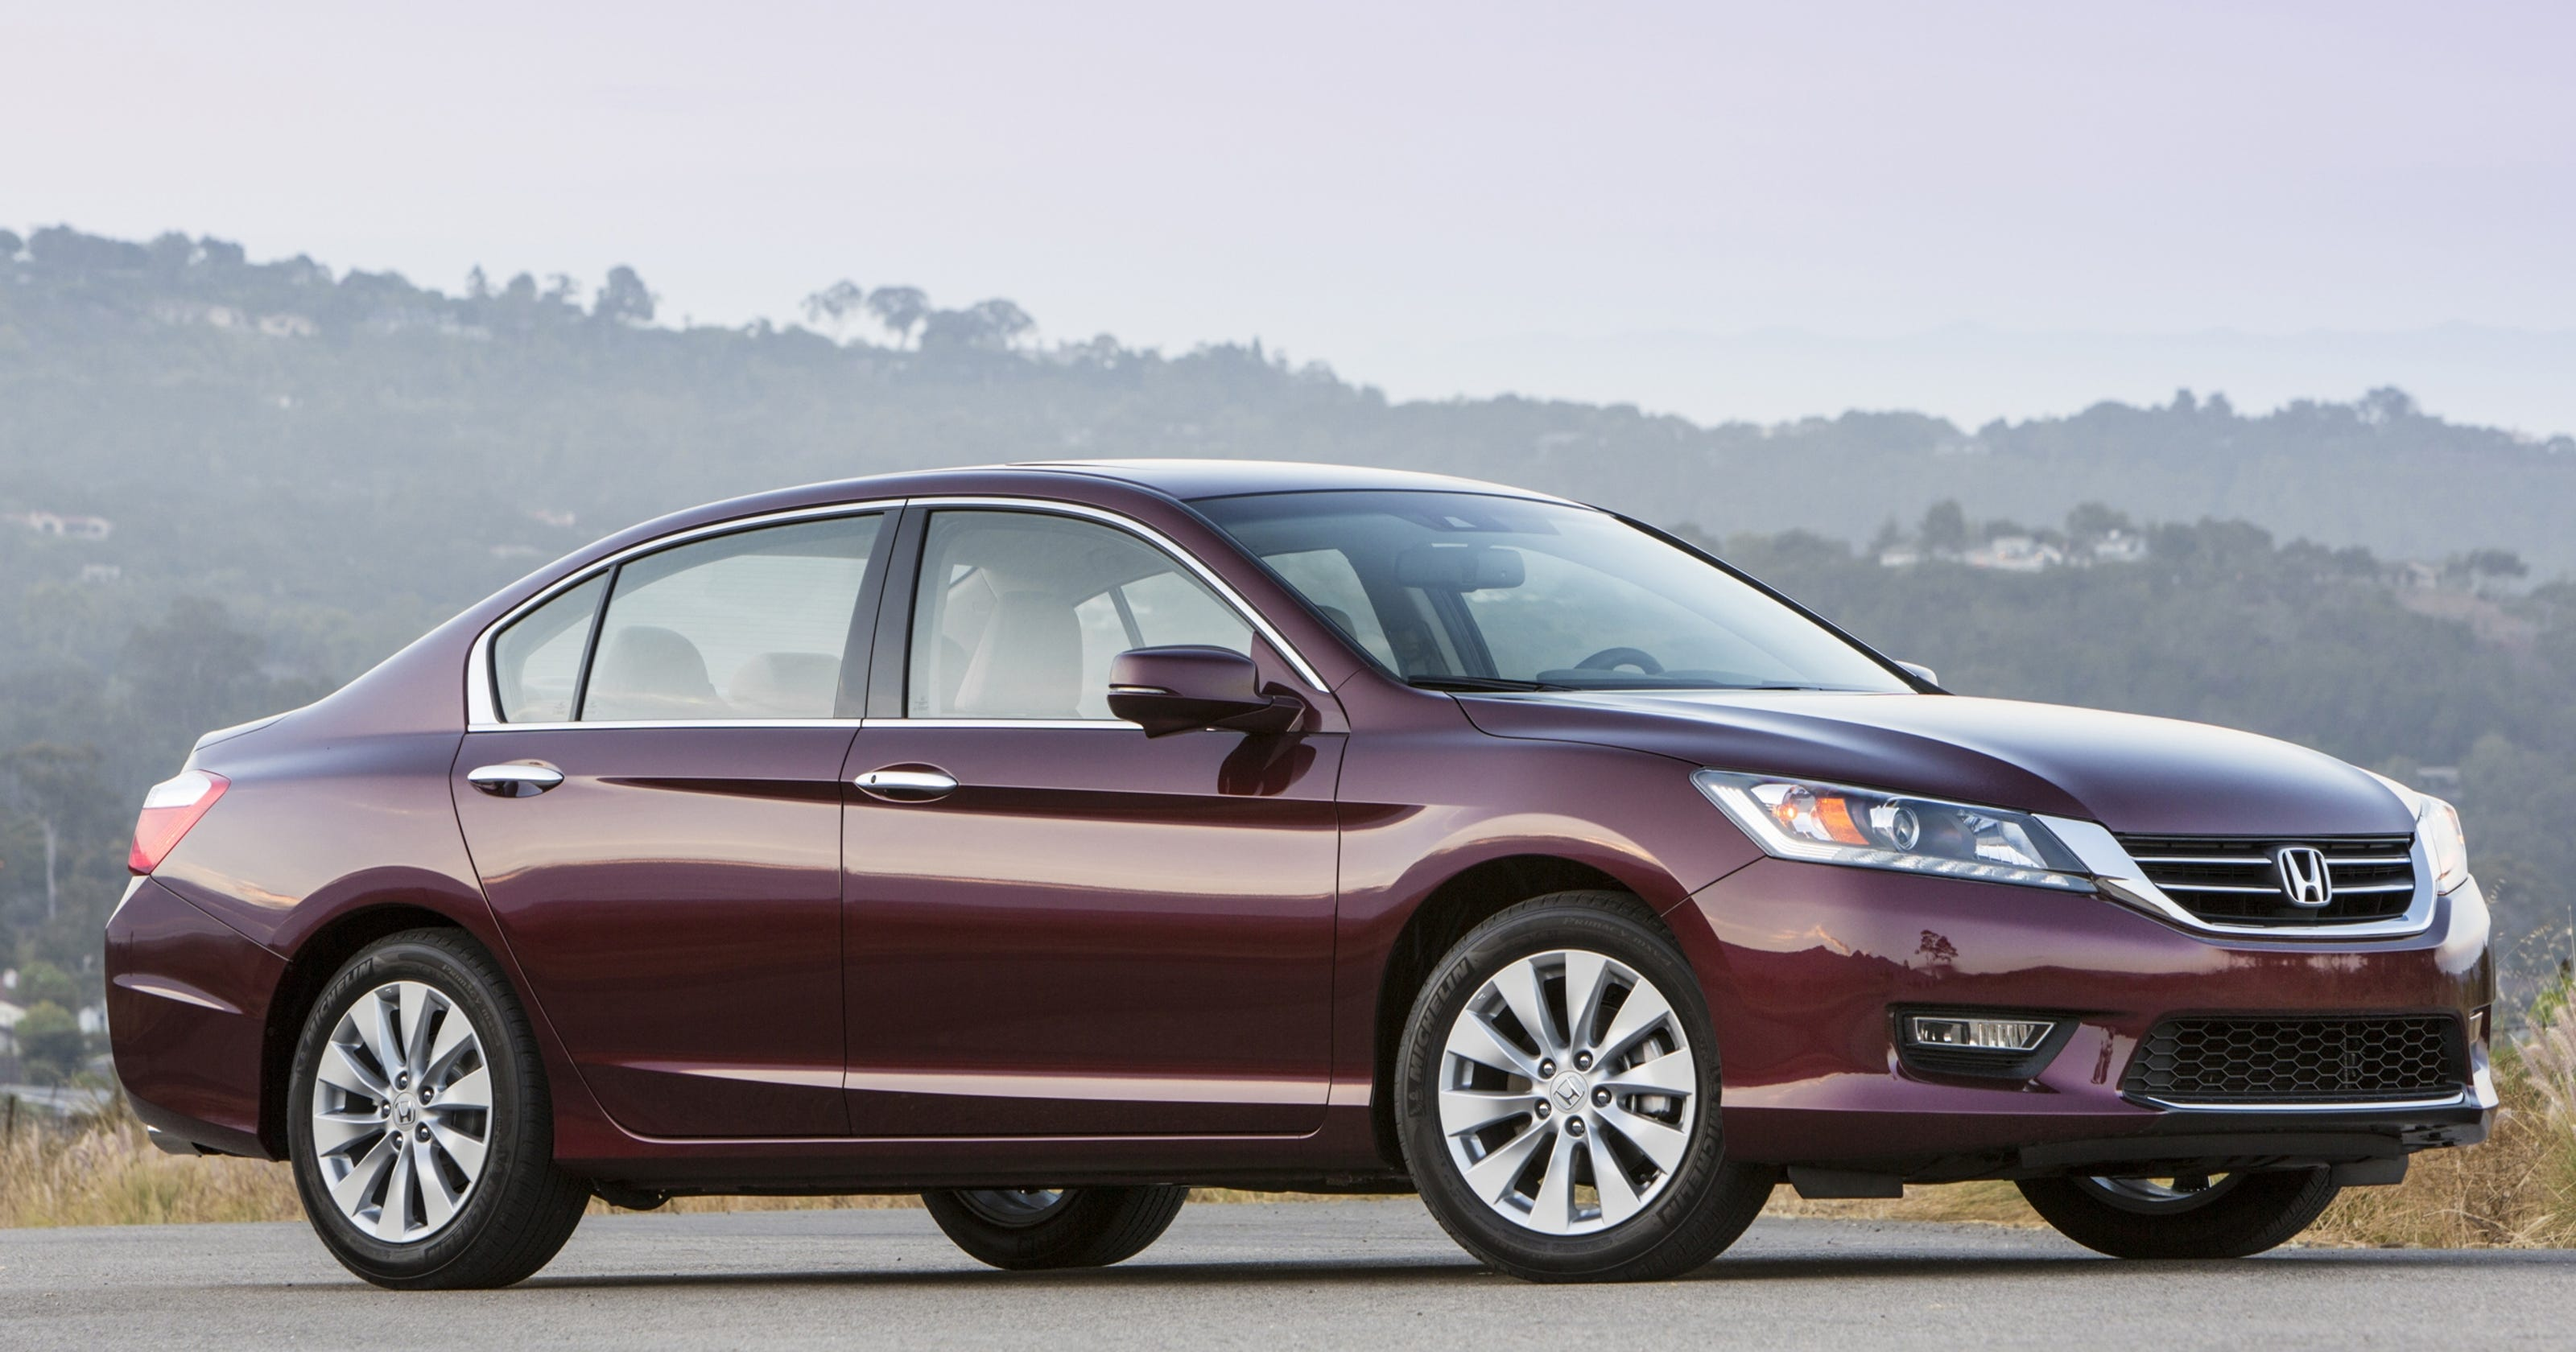 Consumer Reports: Honda bounds back